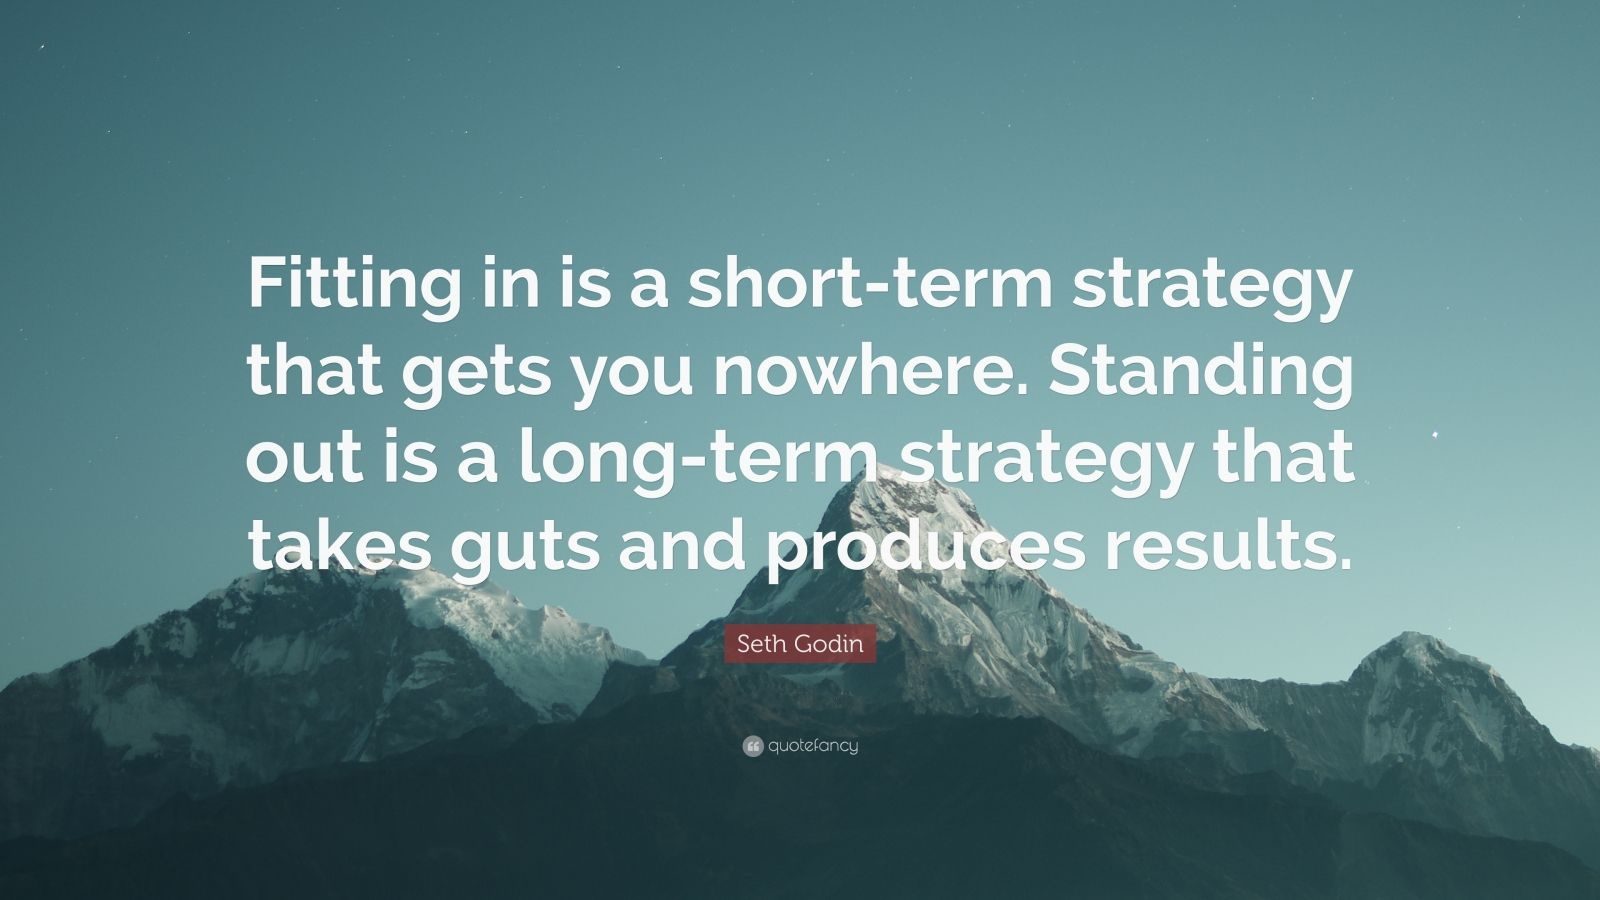 """Seth Godin Quote: """"Fitting in is a short-term strategy that gets you nowhere. Standing out is a long-term strategy that takes guts and produces results."""""""